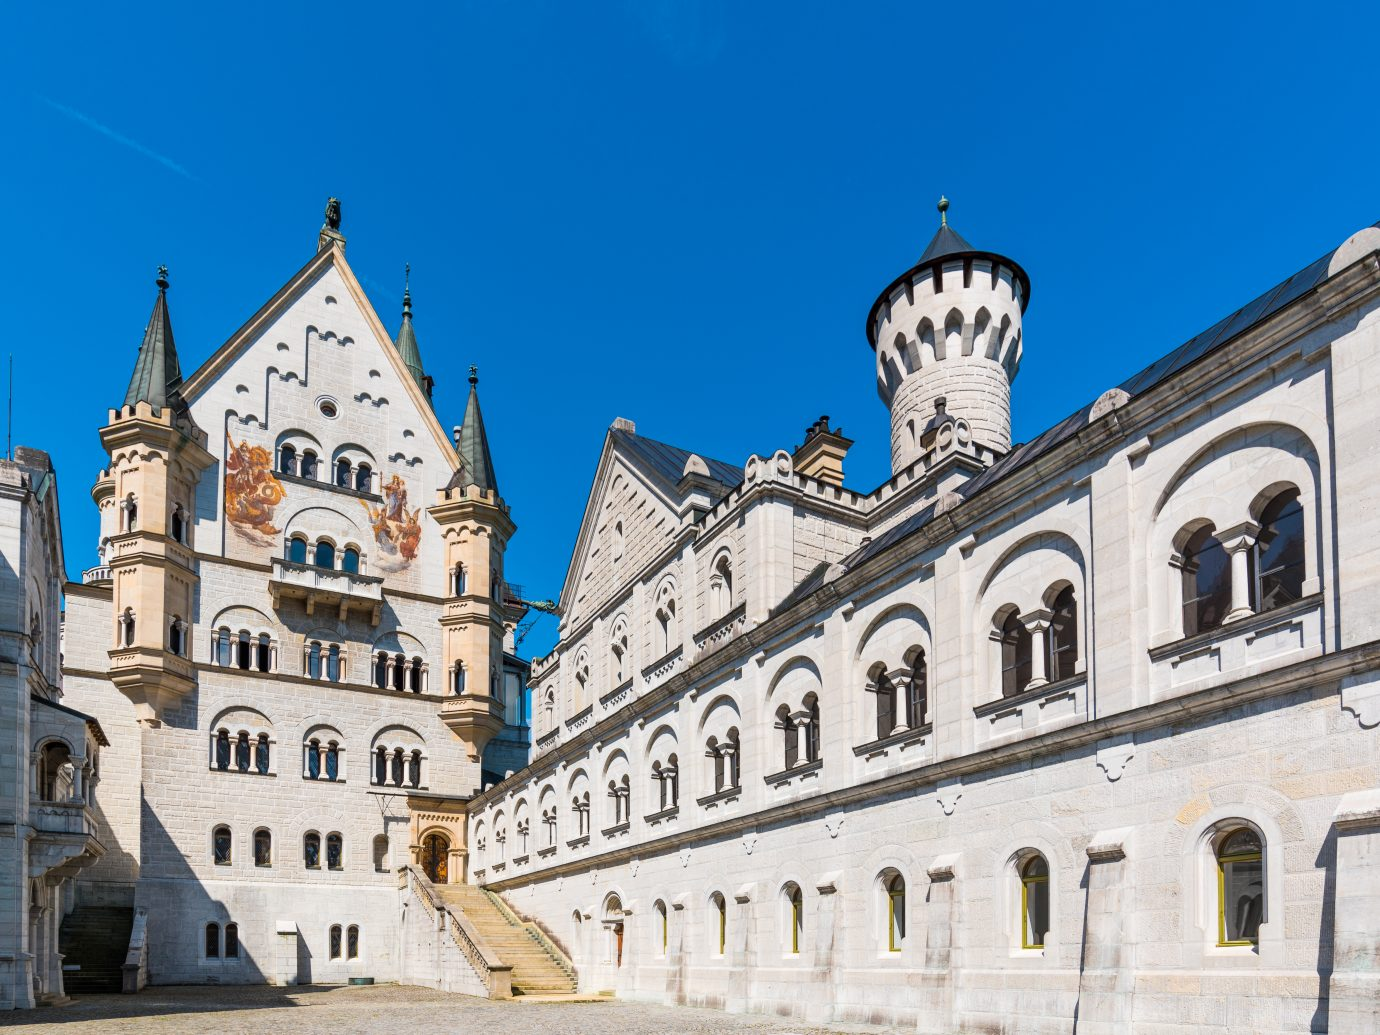 Inside of Neuschwanstein castle